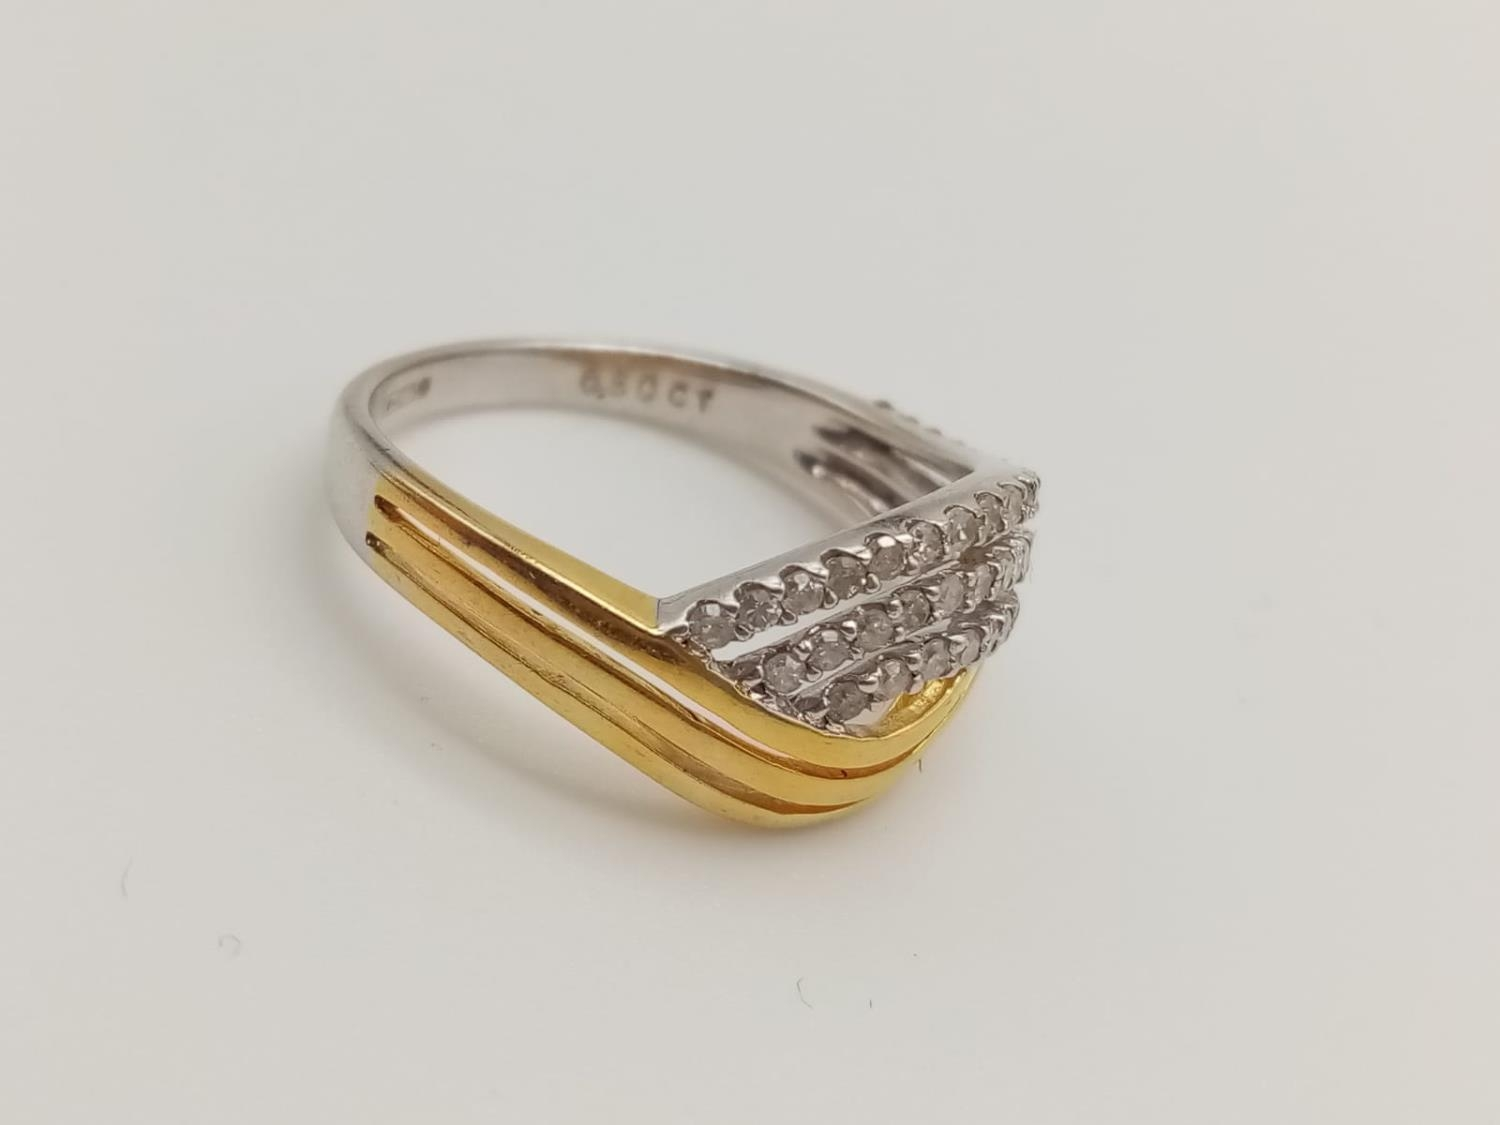 9k yellow and white gold diamond set ring with 0.50ct diamonds, weight 3.2g and size P - Image 3 of 7